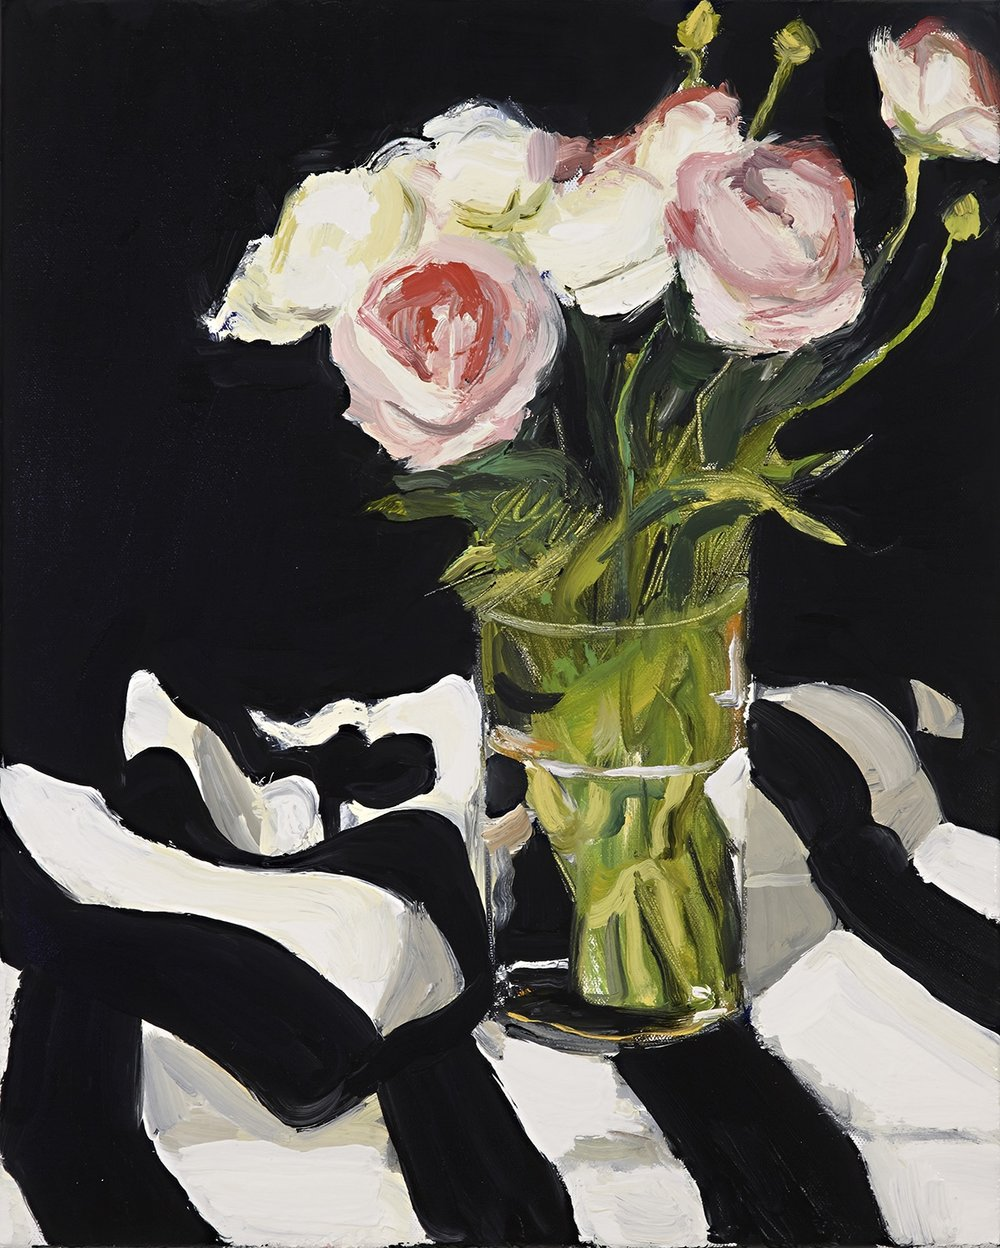 STILL LIFE WITH RANUNCULUS 1 2014, oil on linen, 50x40cm